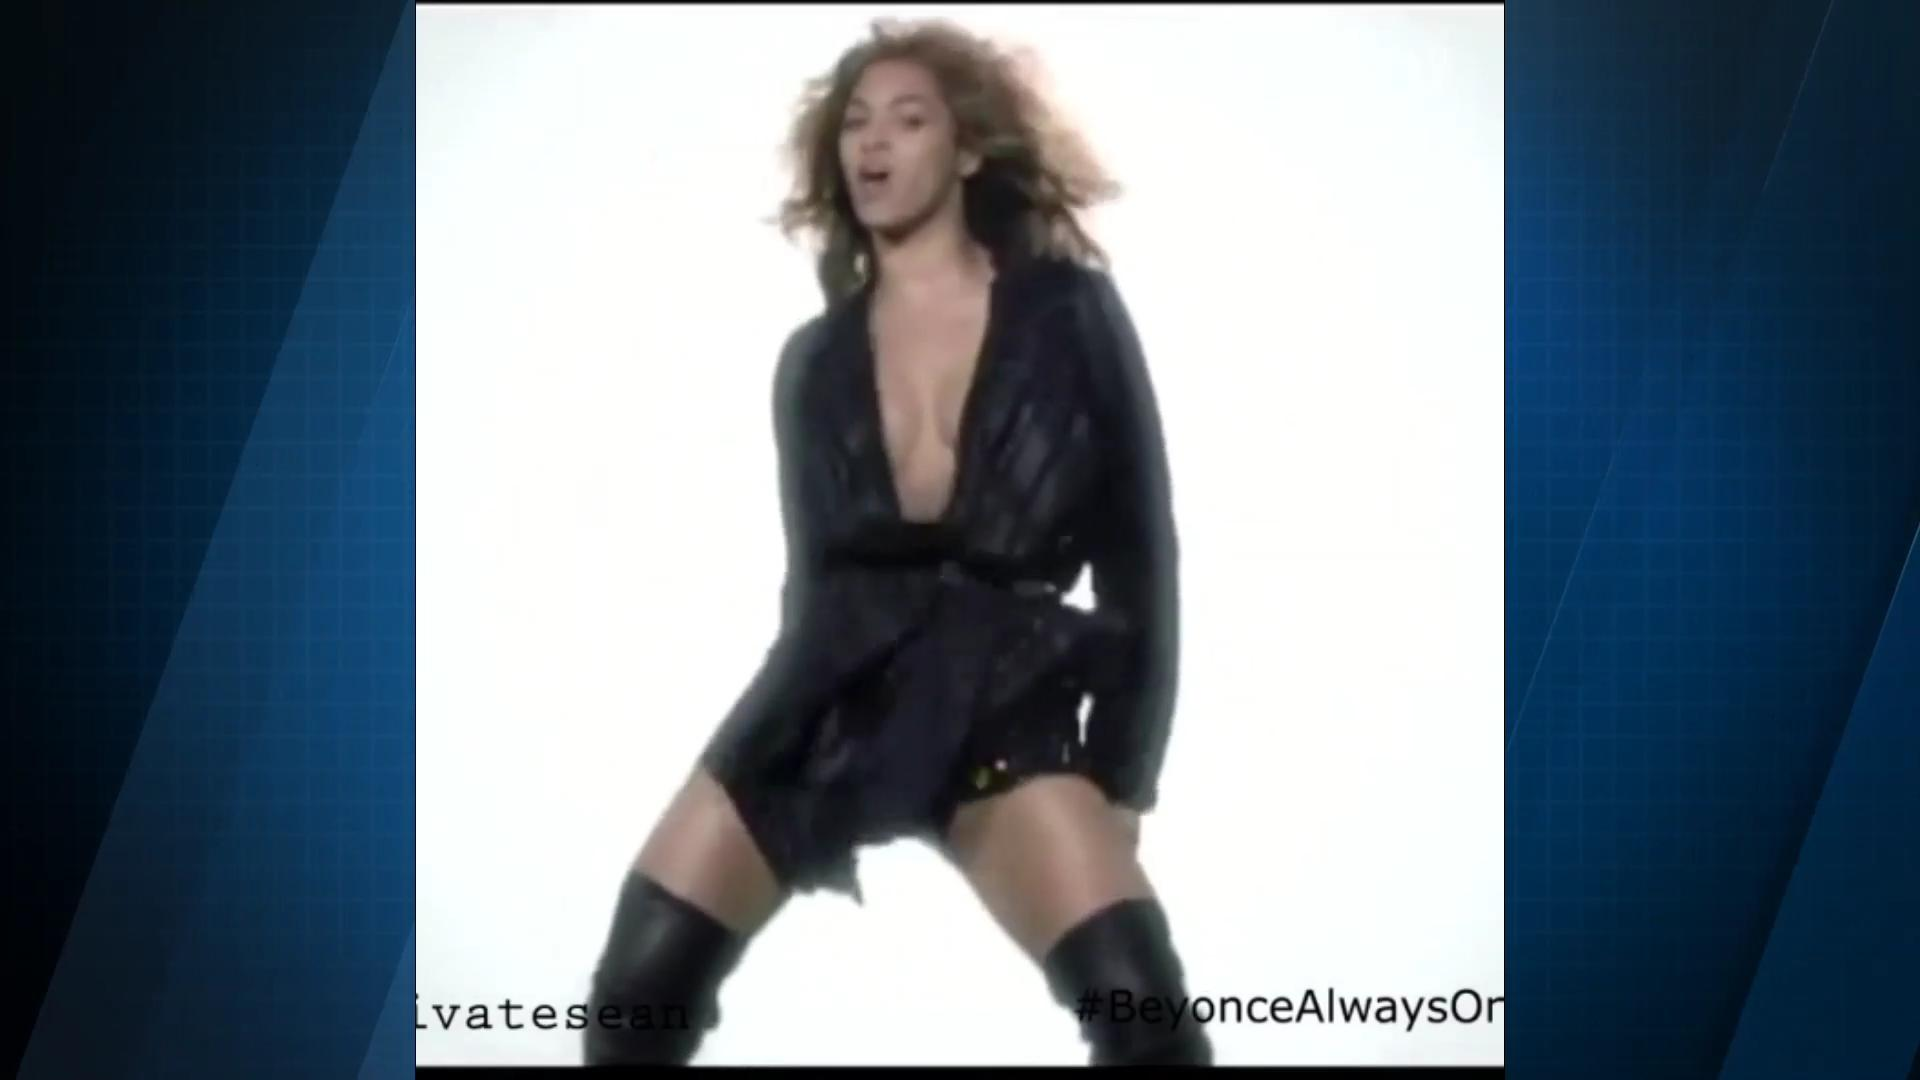 Beyonce is 'Always on Beat' to every song